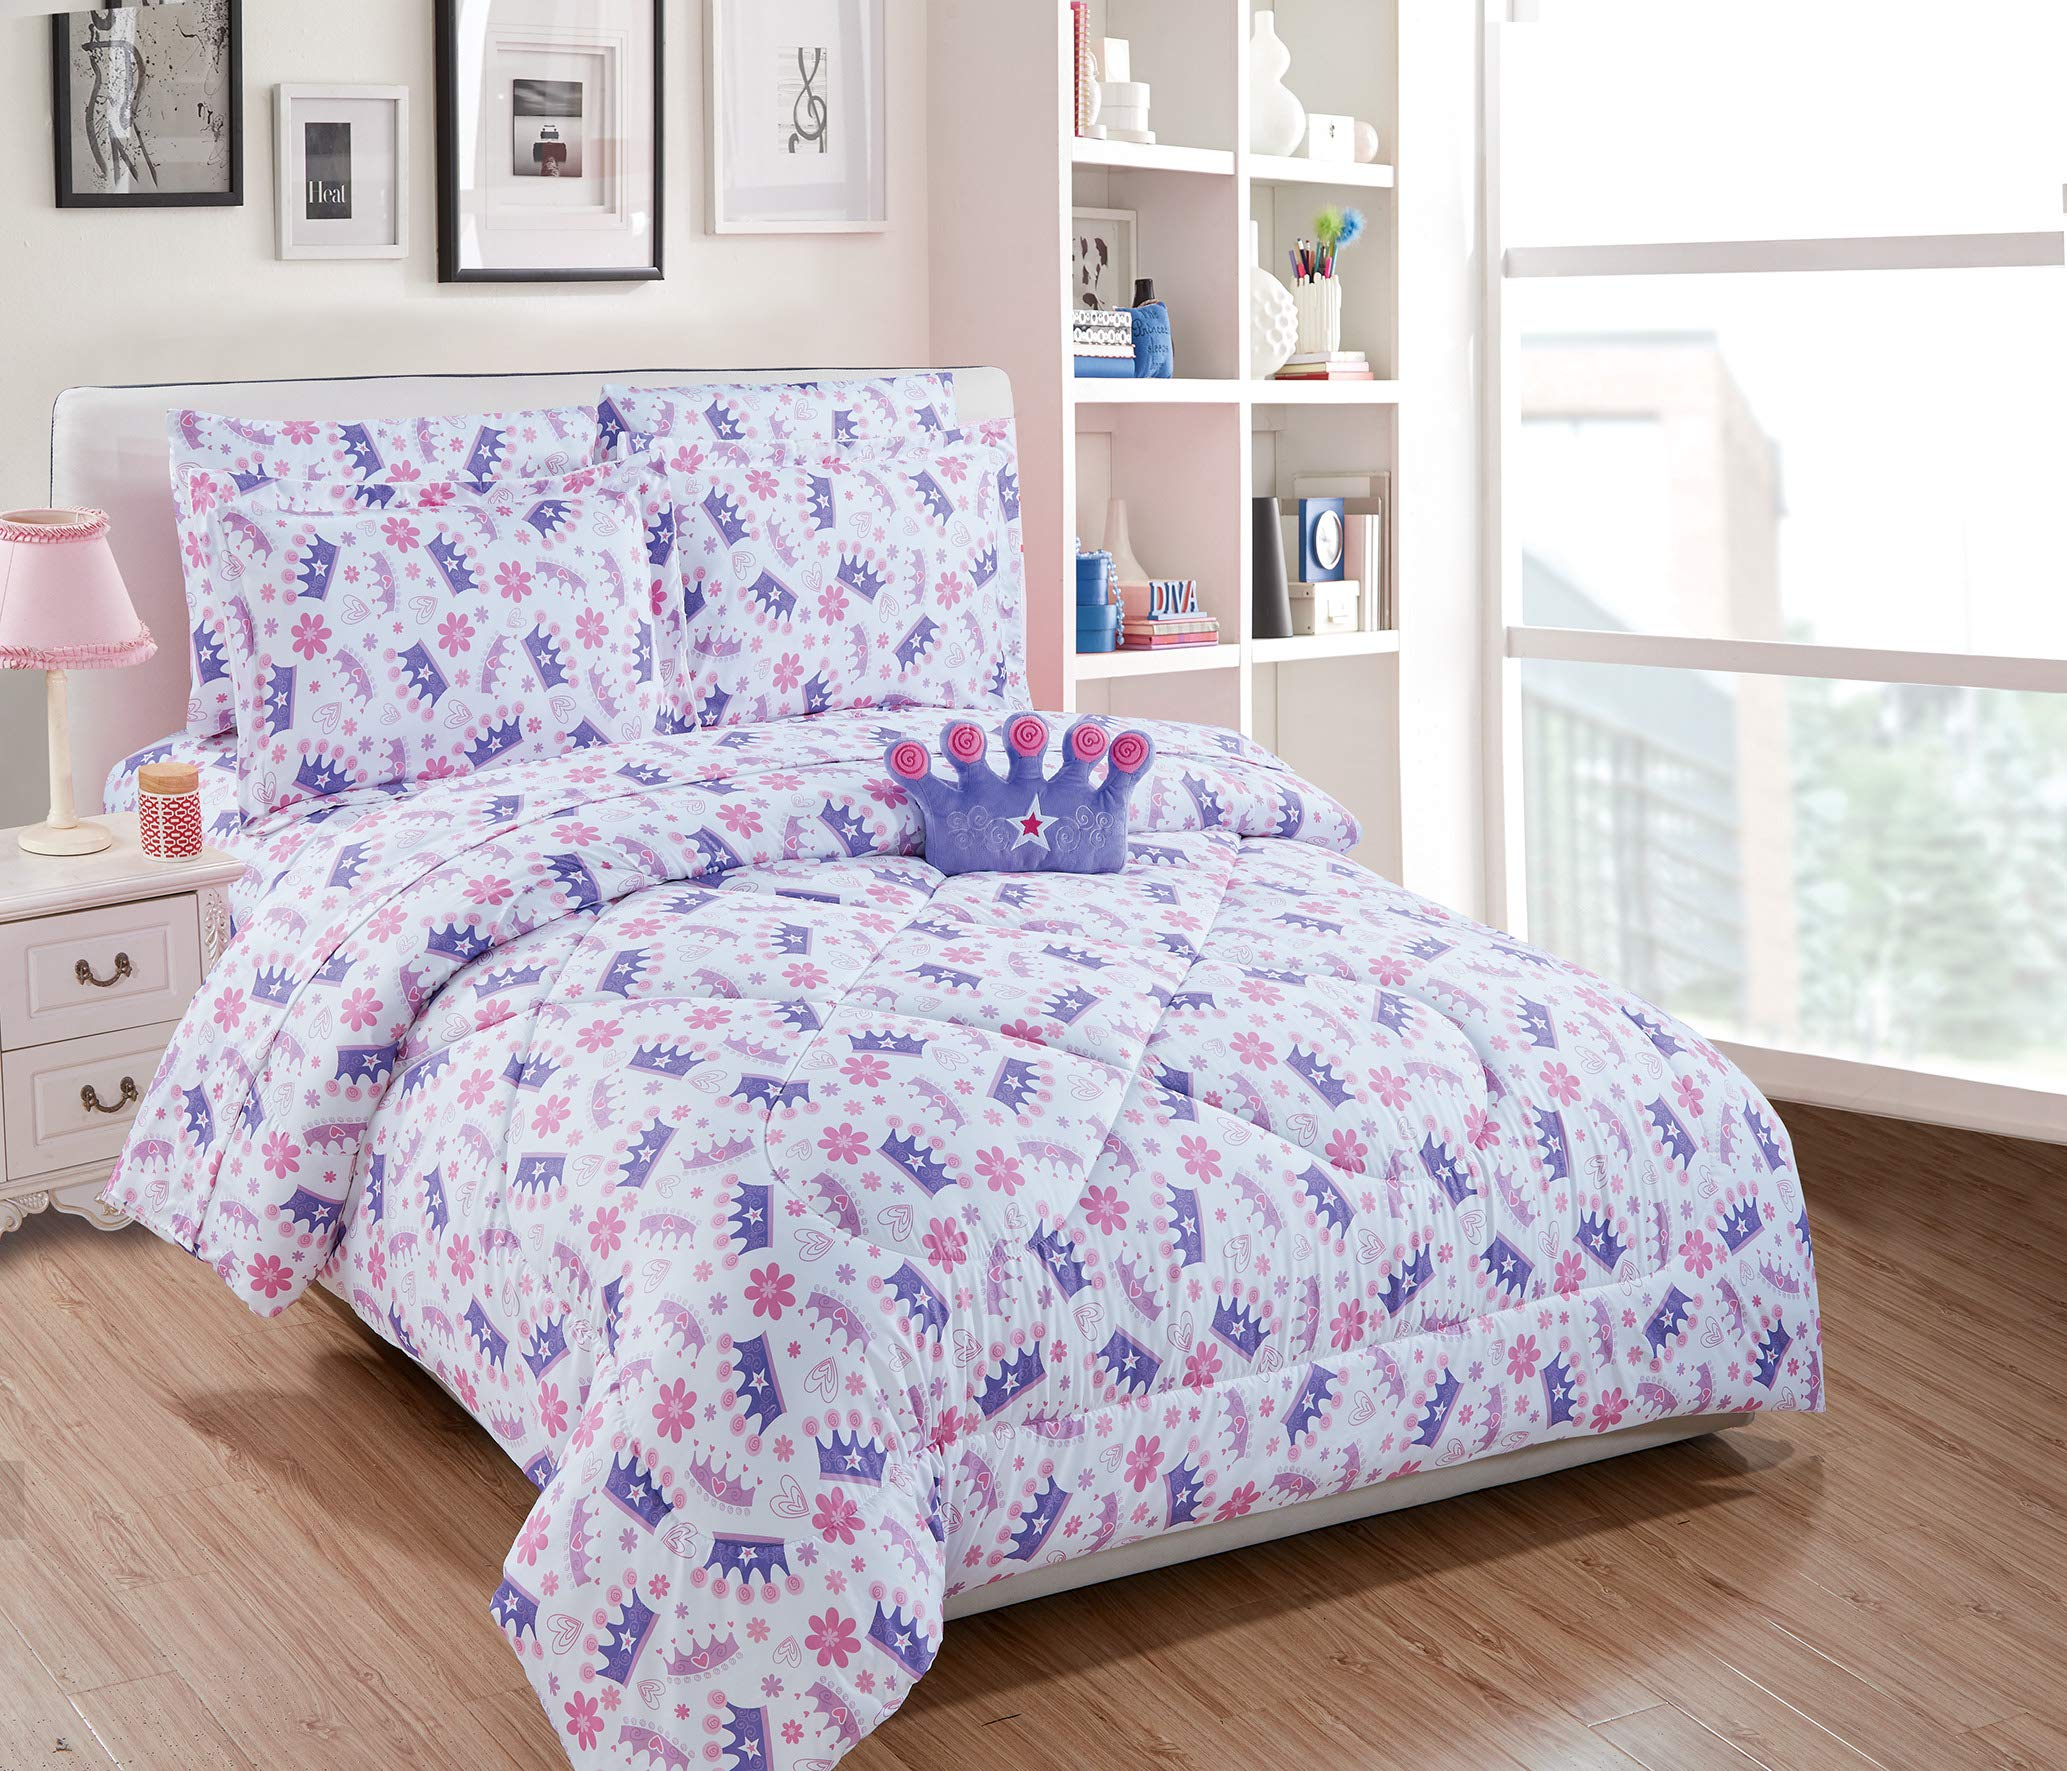 Mk Home 5pc Twin Size Comforter Set for Girls Crown Tiaras Hearts Flowers Lavender Purple Pink White New